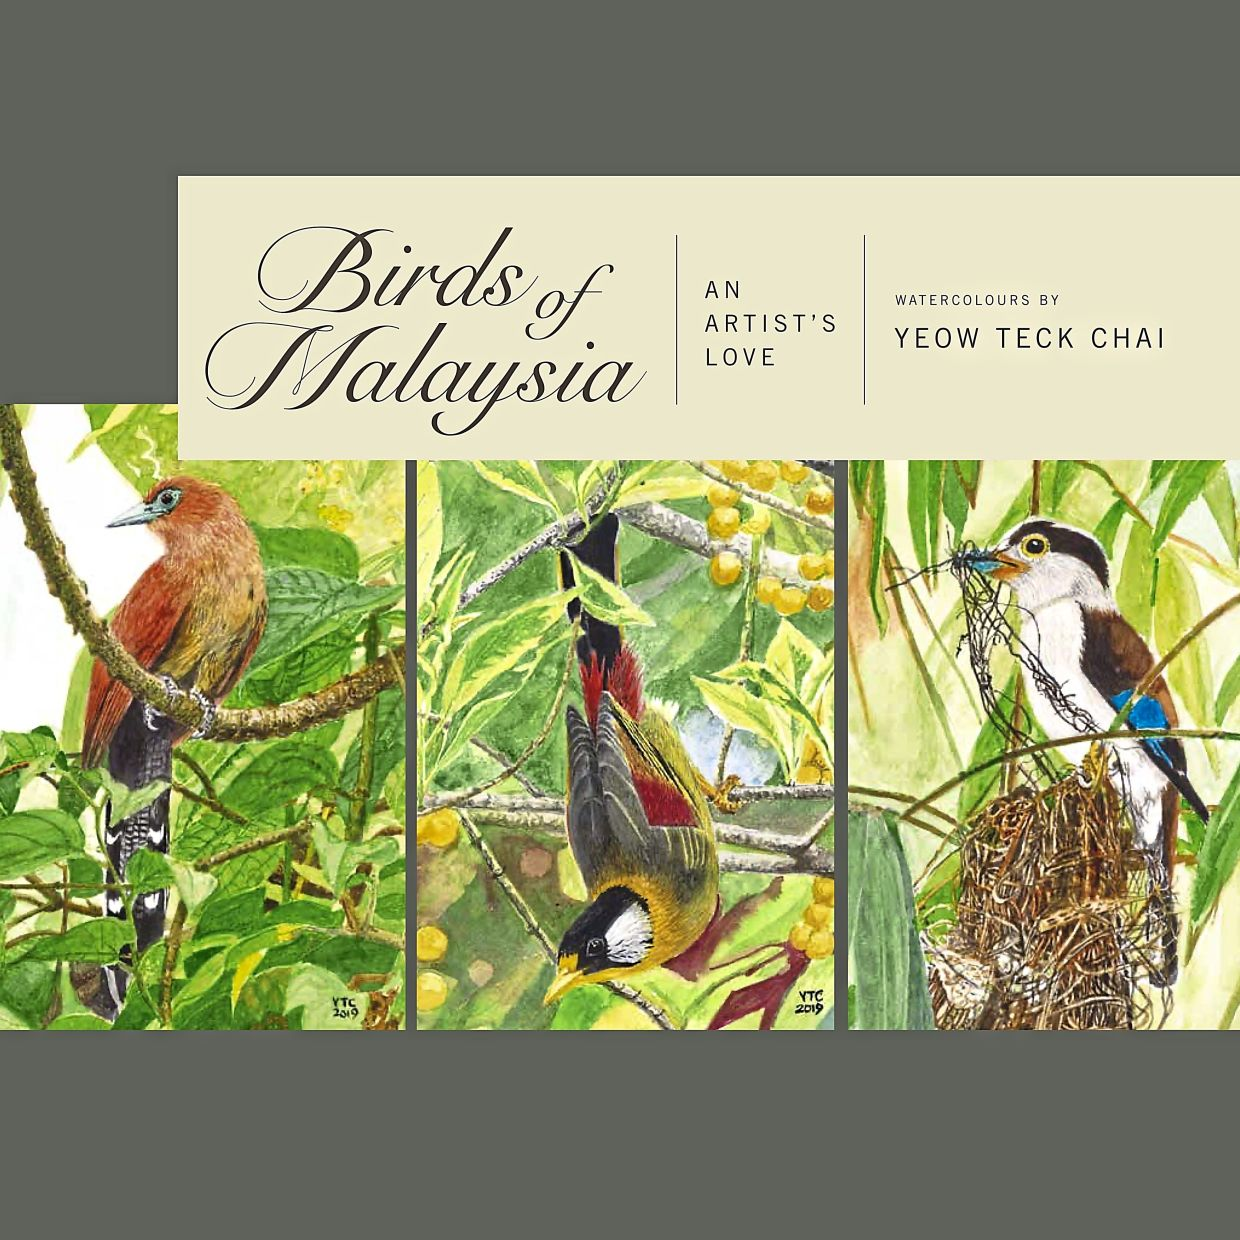 'Birds Of Malaysia: An Artist's Love' features some 130 prints of Yeow Teck Chai's artworks.